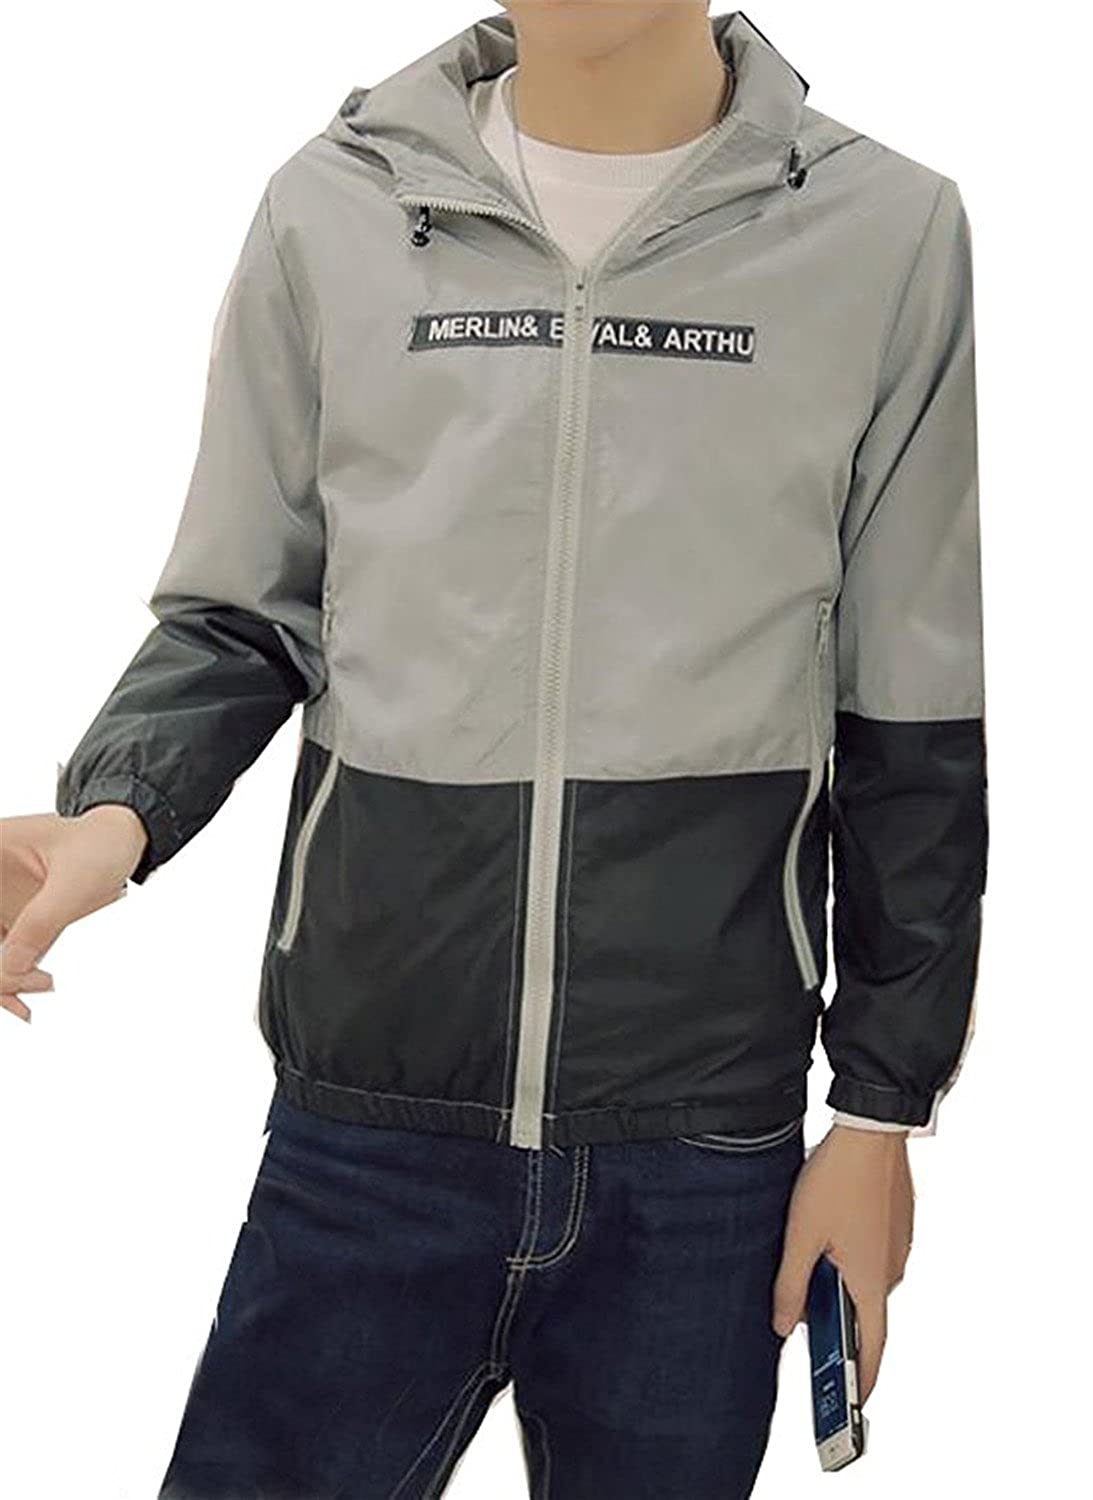 KDHJJOLY New Mens Leisure Sports Outdoor Running Windbreaker Jacket